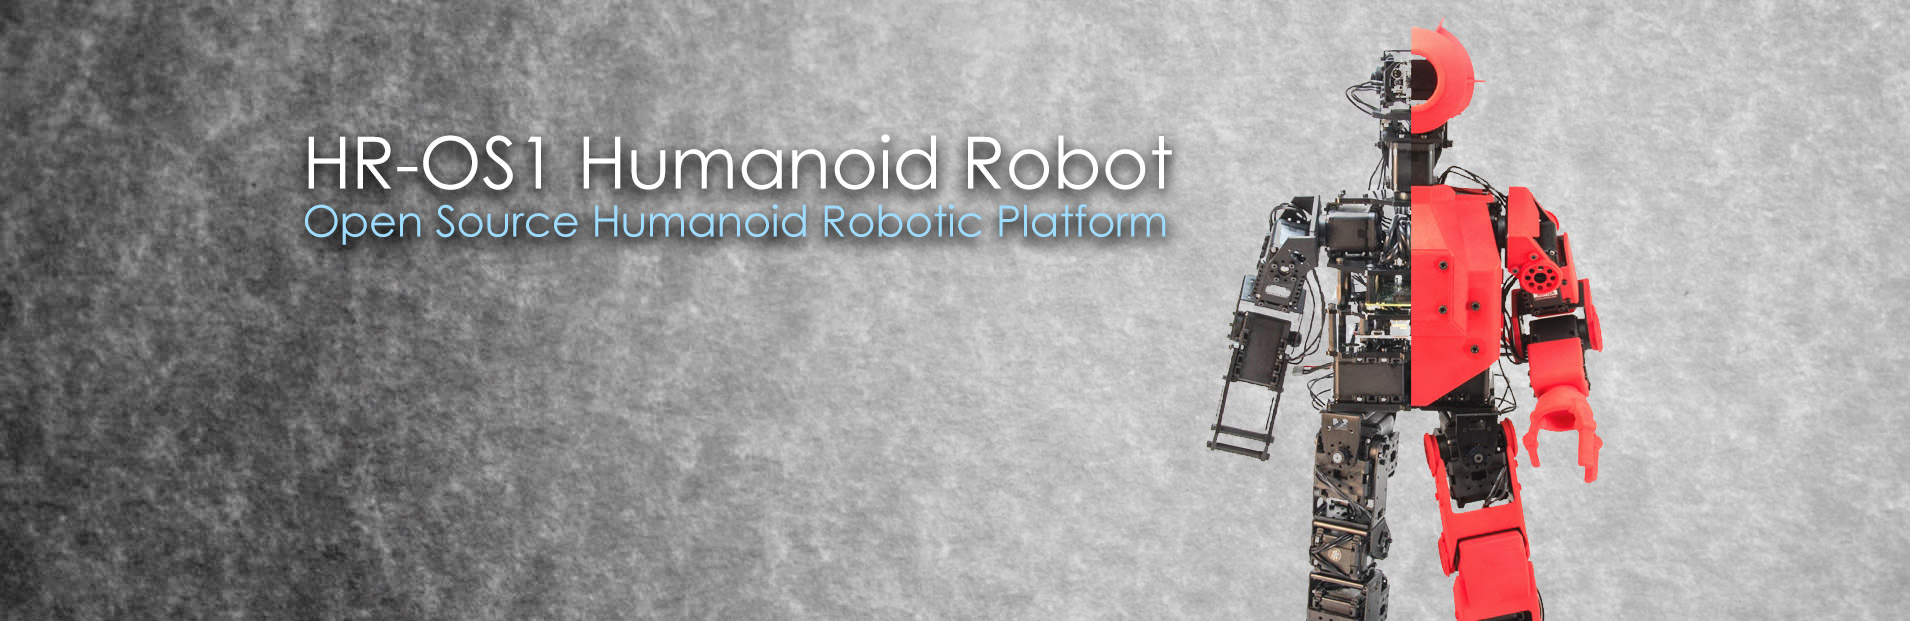 HR-OS1 Humanoid Robot — Open Source Humanoid Robotic Platform